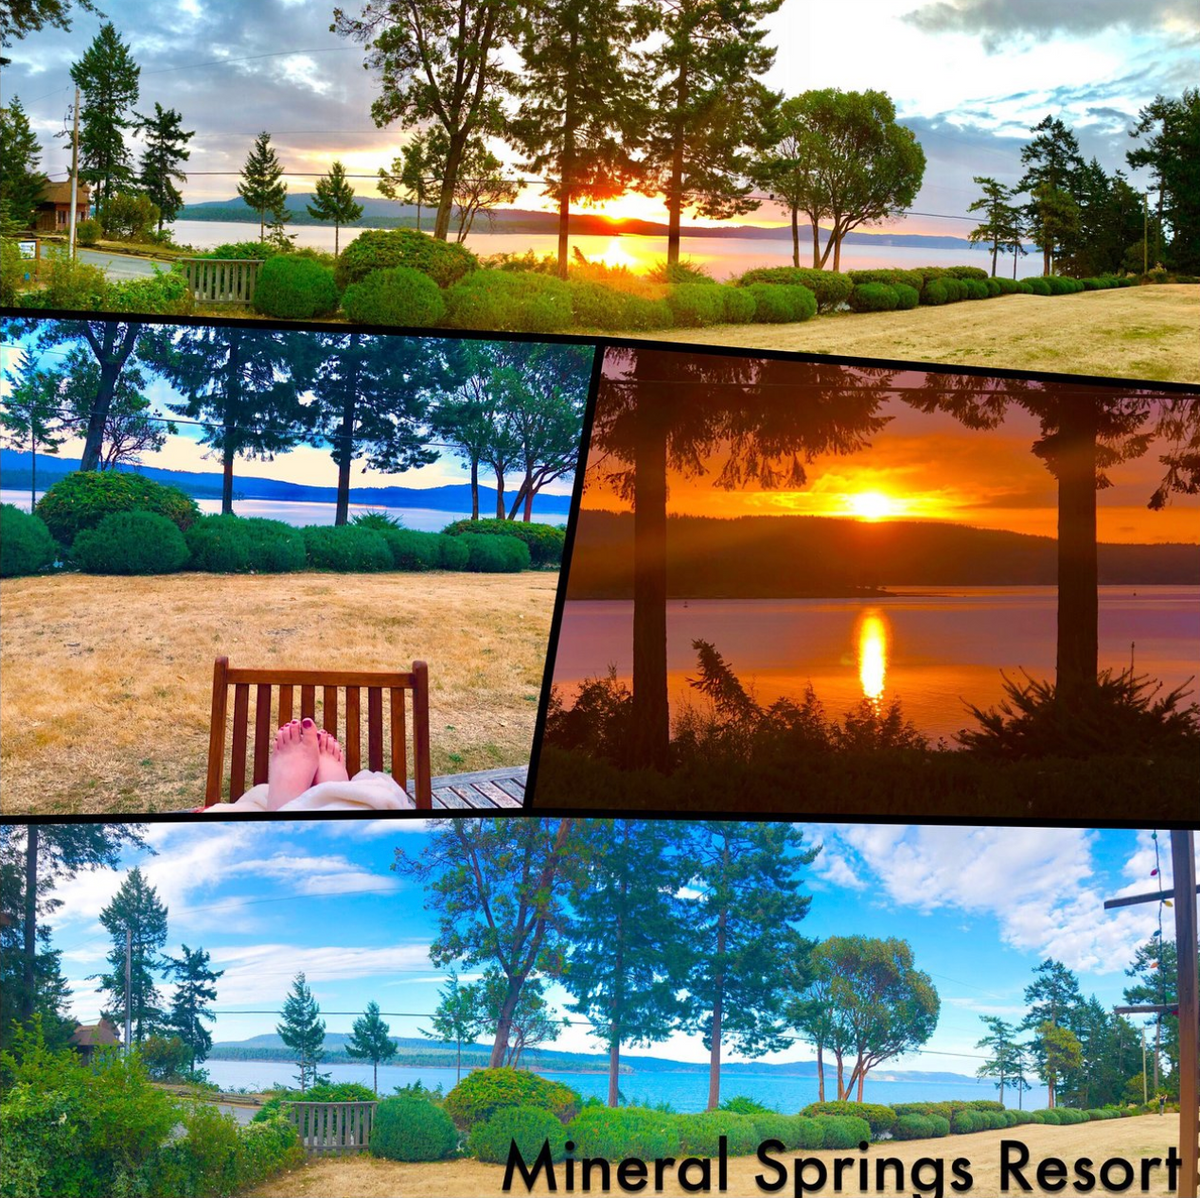 Salt Spring Island Weekend Retreat: Aligning with Spirit August 2020, Double Occupancy - West Coast Skies